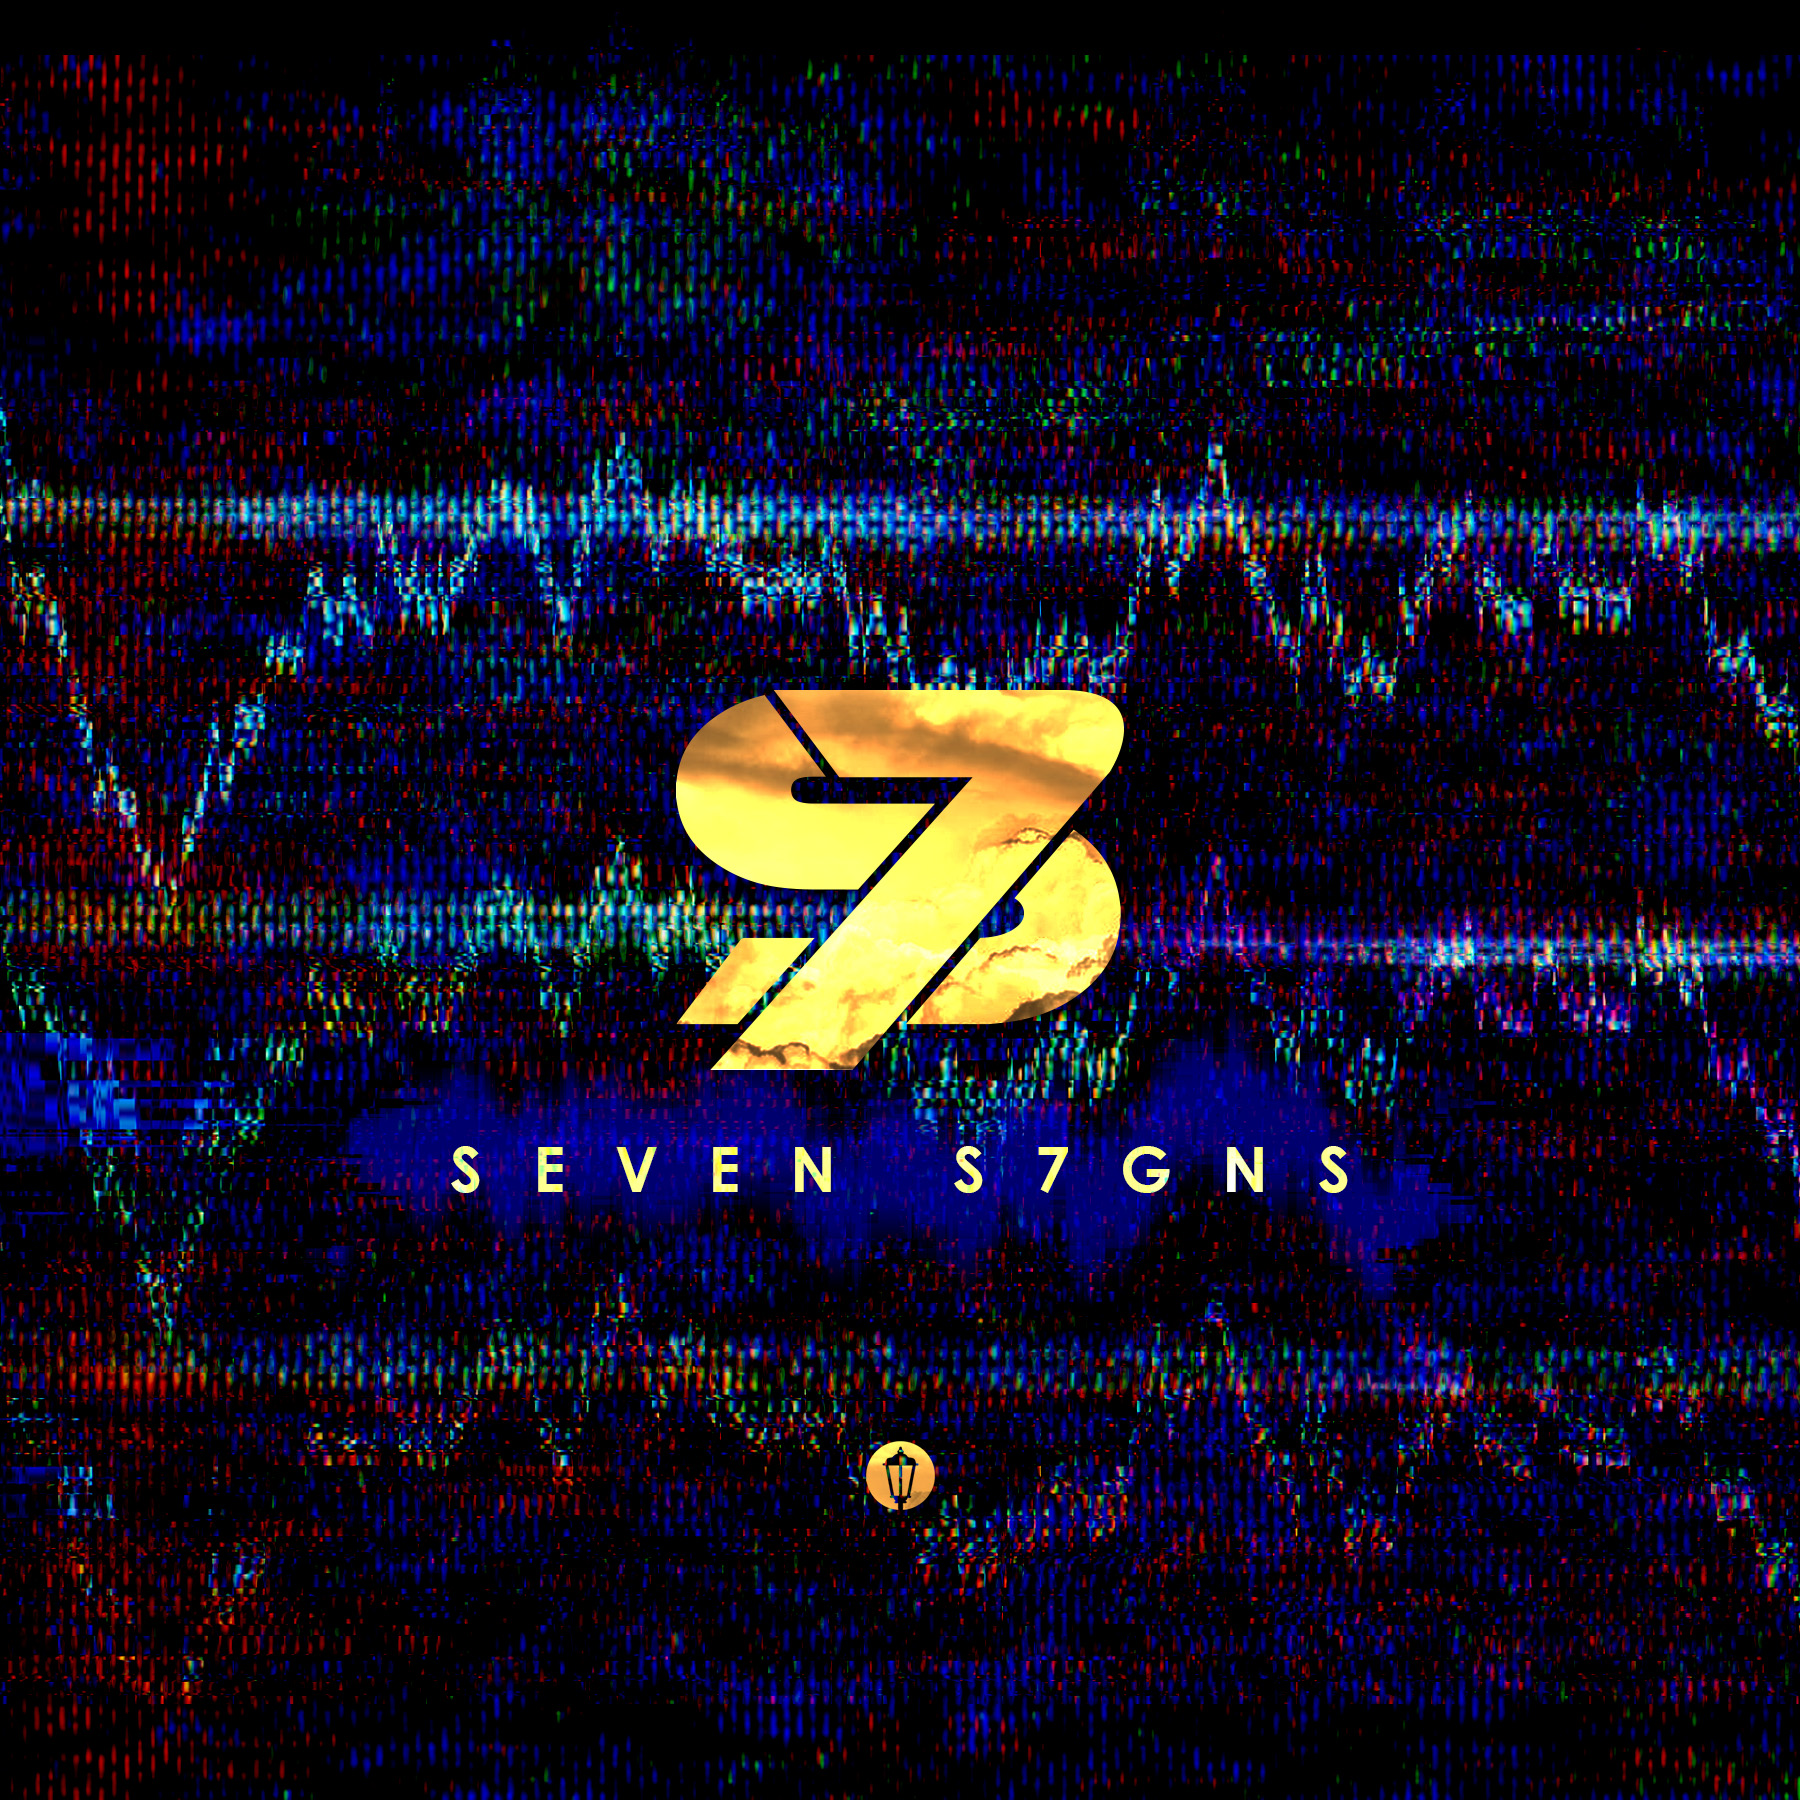 SEVEN S7GNS  - IG Square.jpg